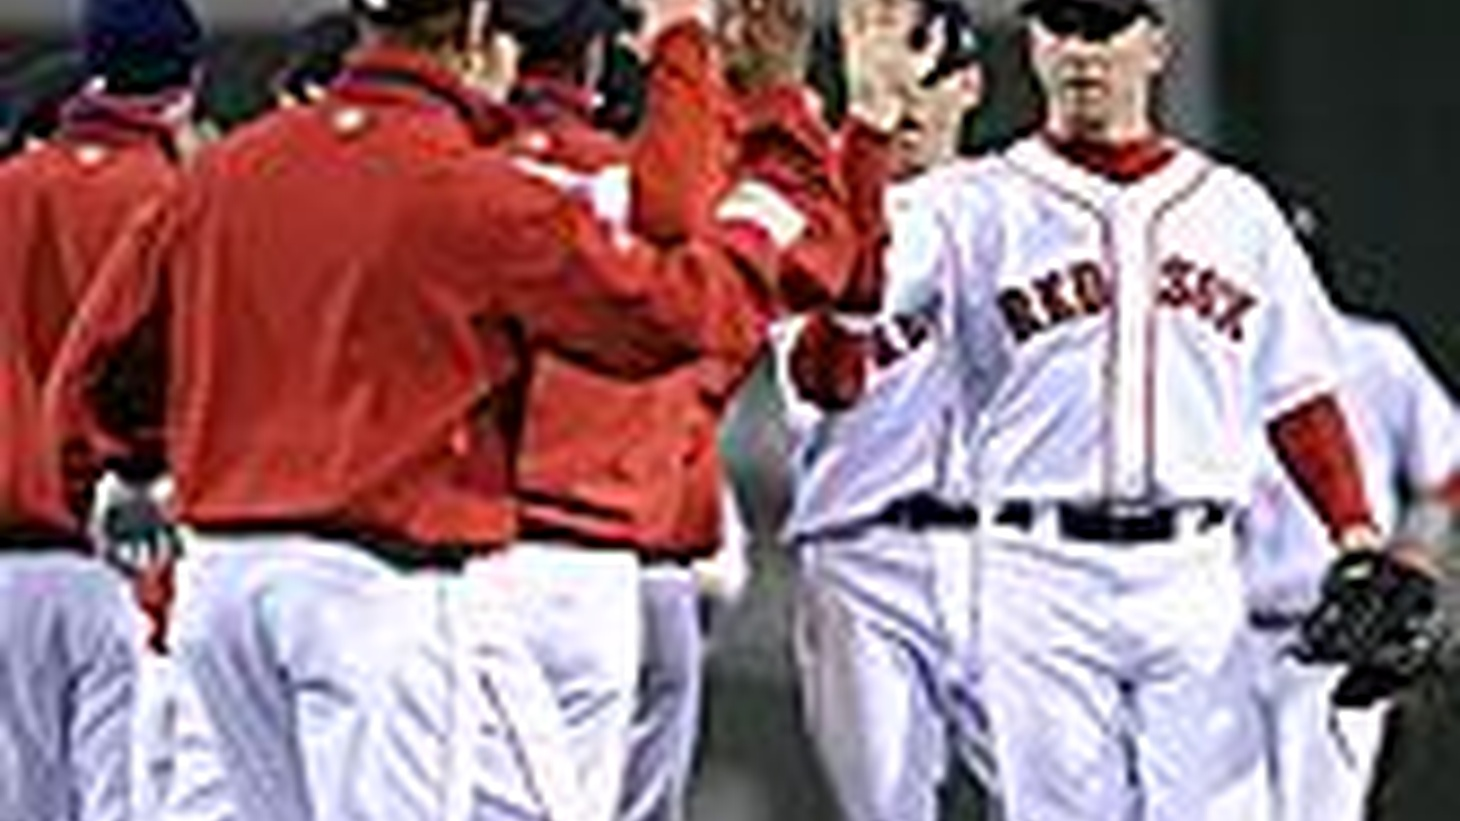 Just last week I was making the point that you don't have to be a rabid baseball fan...actually, I was saying that you don't have to know anything at all about baseball to get involved in post-season play. I know people who don't ever have a clue as to who's playing in the Super Bowl, don't have any idea what you're referring to when you say The Final Four, and never watch one inning of the 162 regular games of the baseball season but who threw themselves into the Yankees/Red Sox series, the American League Championship Series, with great gusto. But that was last week. Only seven short days later and here I am to argue precisely the opposite position...